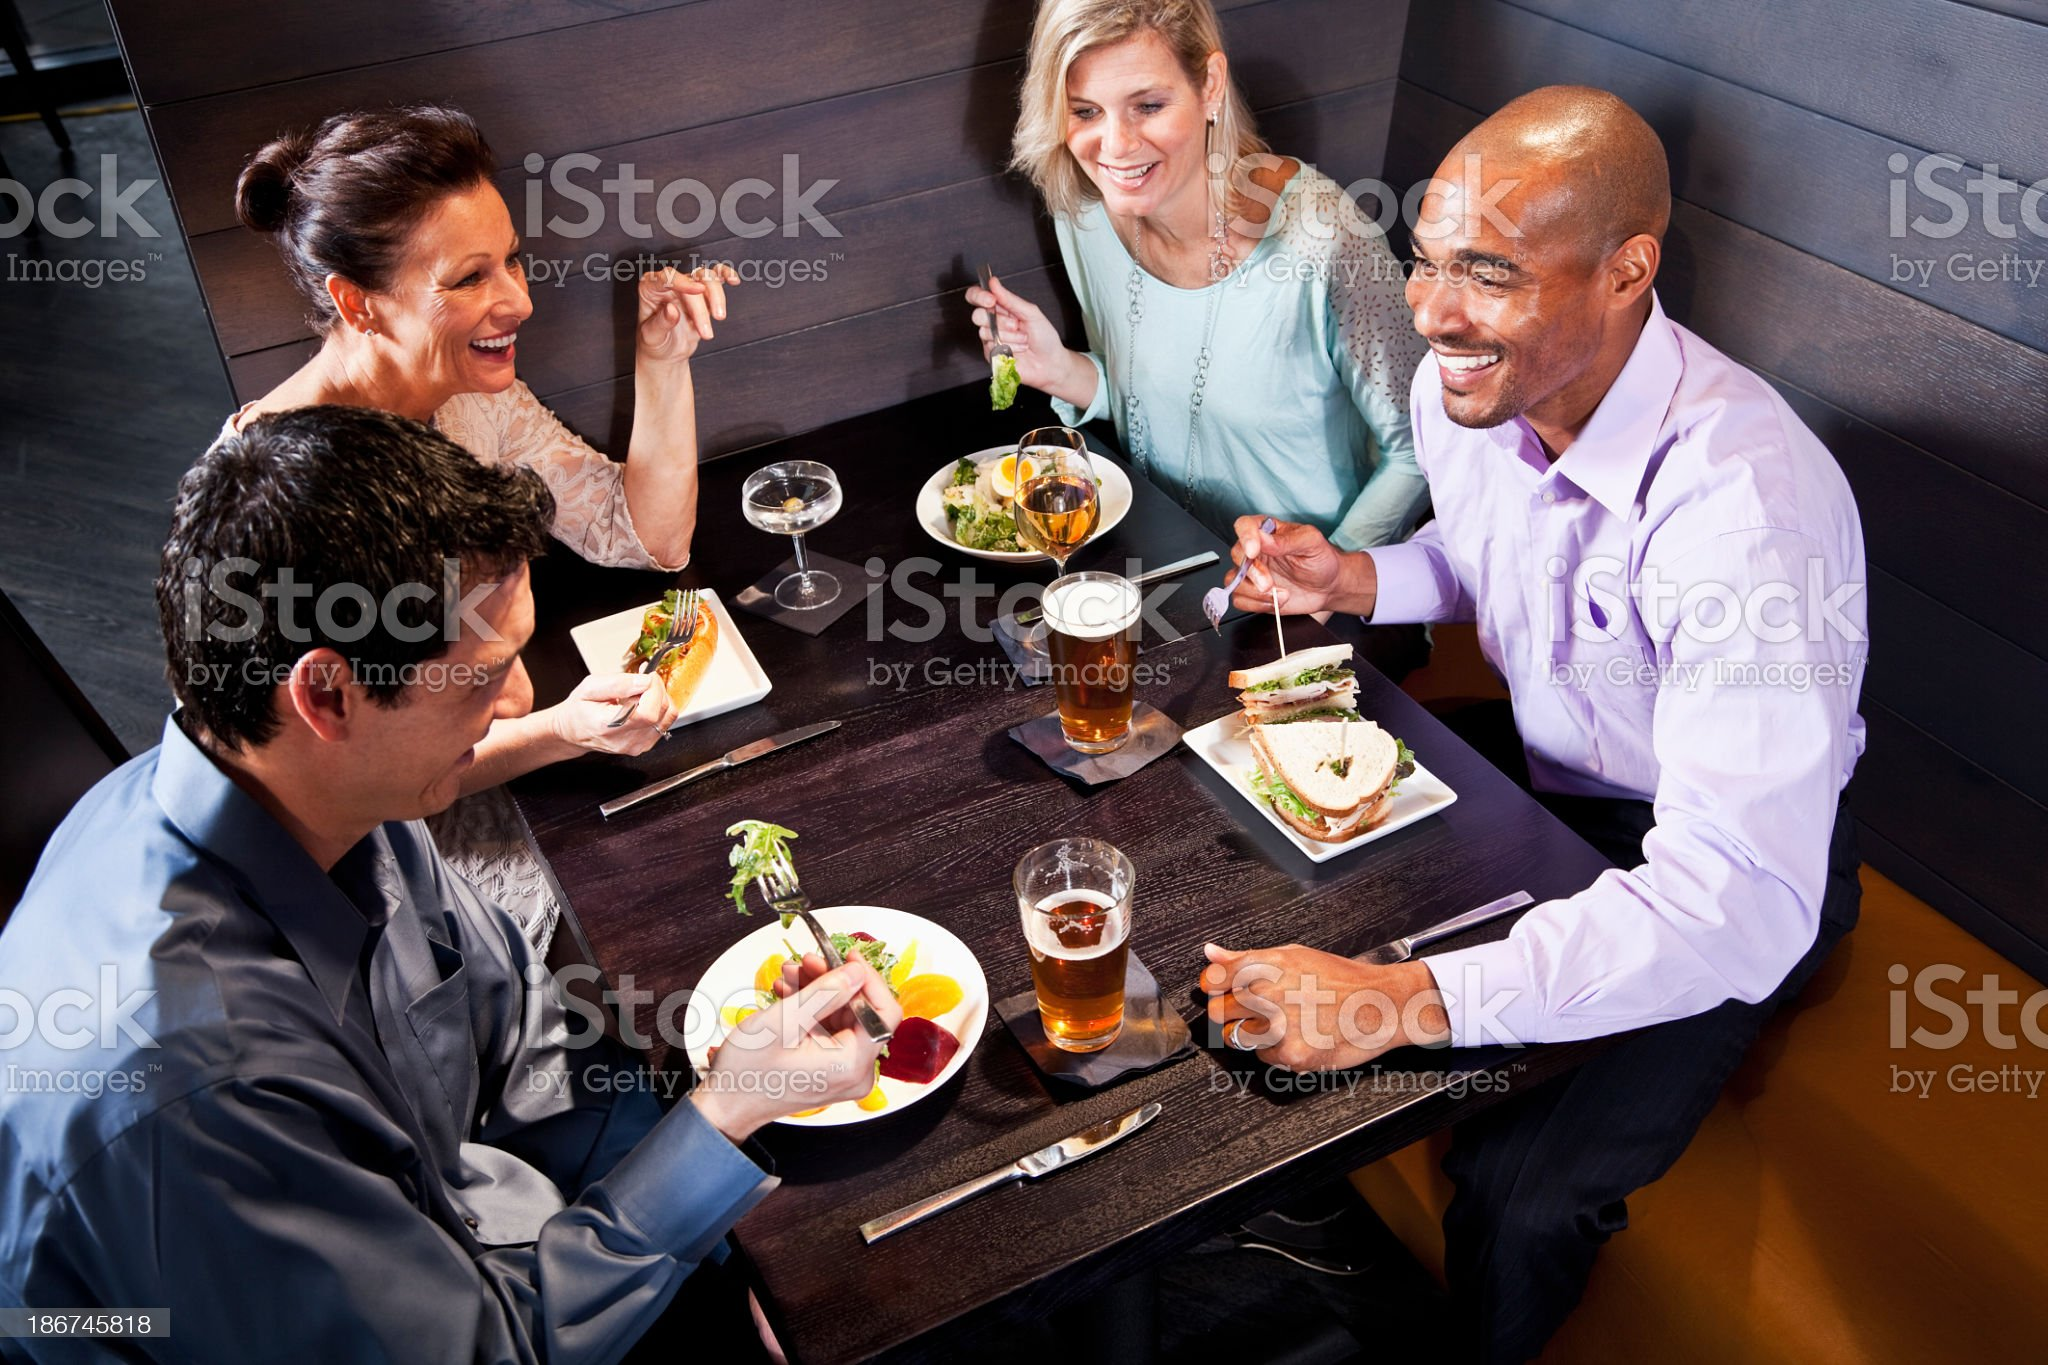 Two couples eating in a restaurant royalty-free stock photo